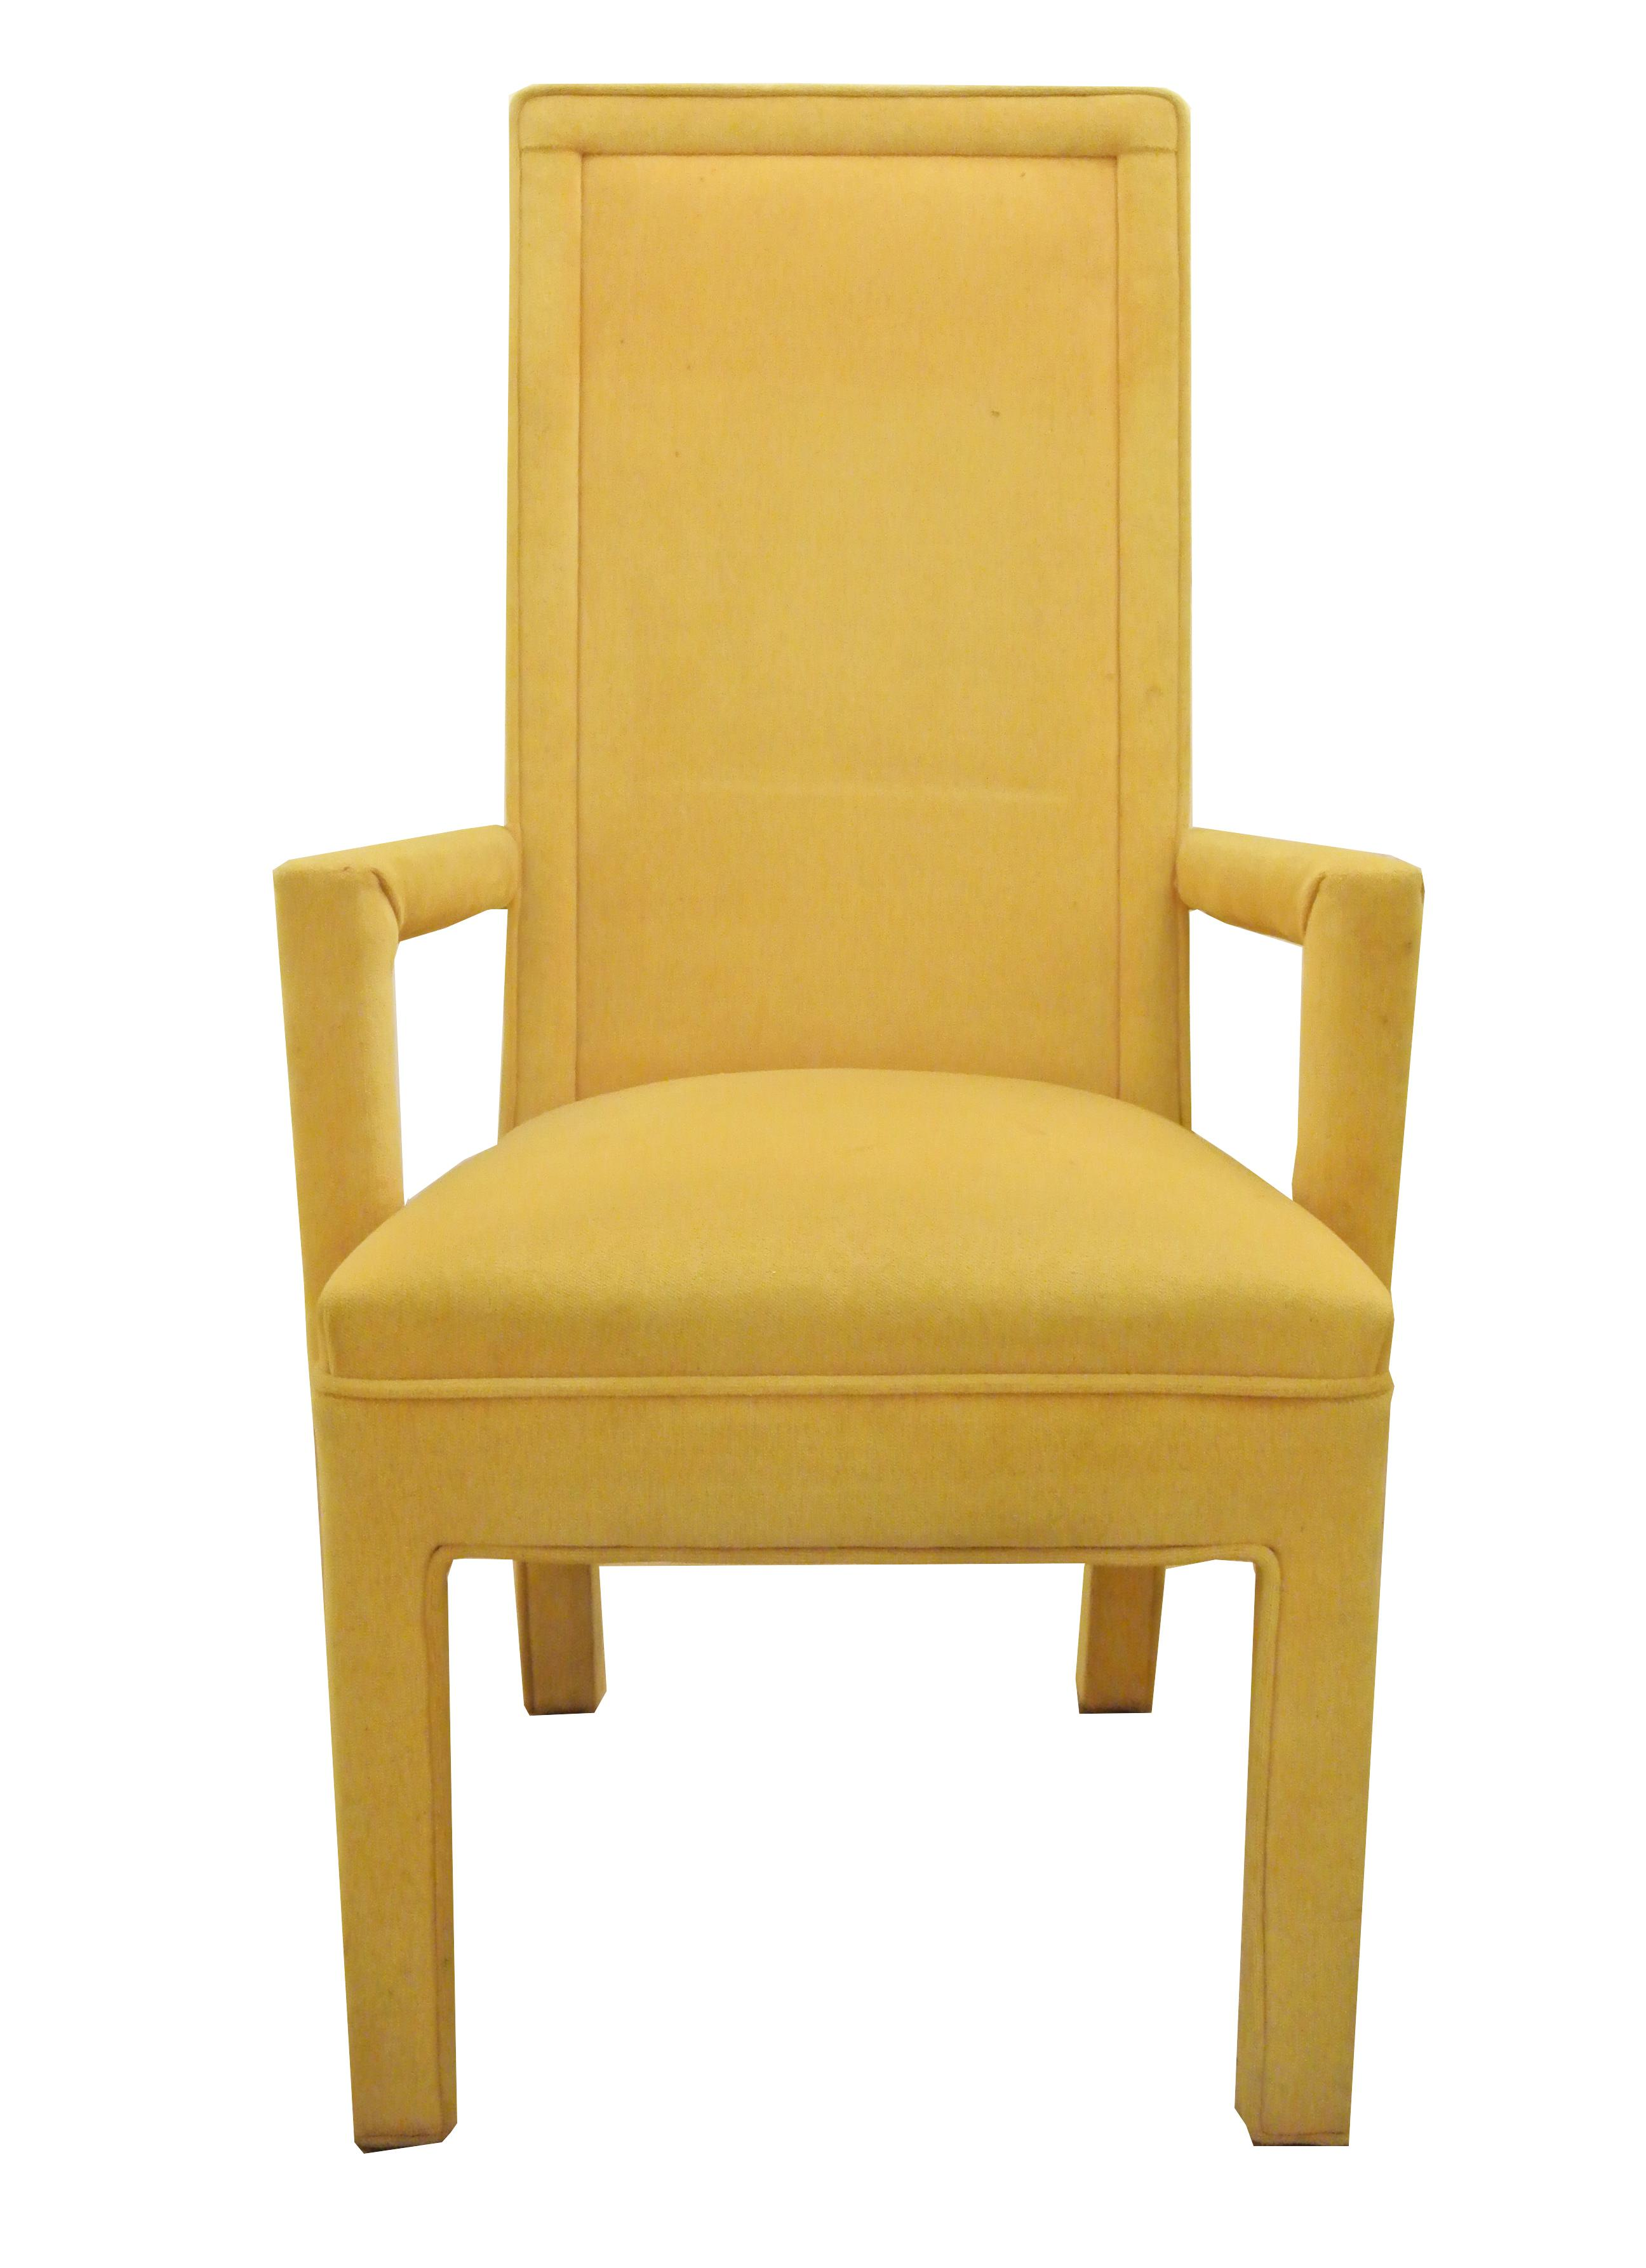 Yellow Faux Mohair Upholstered Parsons Dining Chairs Set  : yellow faux mohair upholstered parsons dining chairs set of 4 2289aspectfitampwidth640ampheight640 from www.chairish.com size 640 x 640 jpeg 22kB